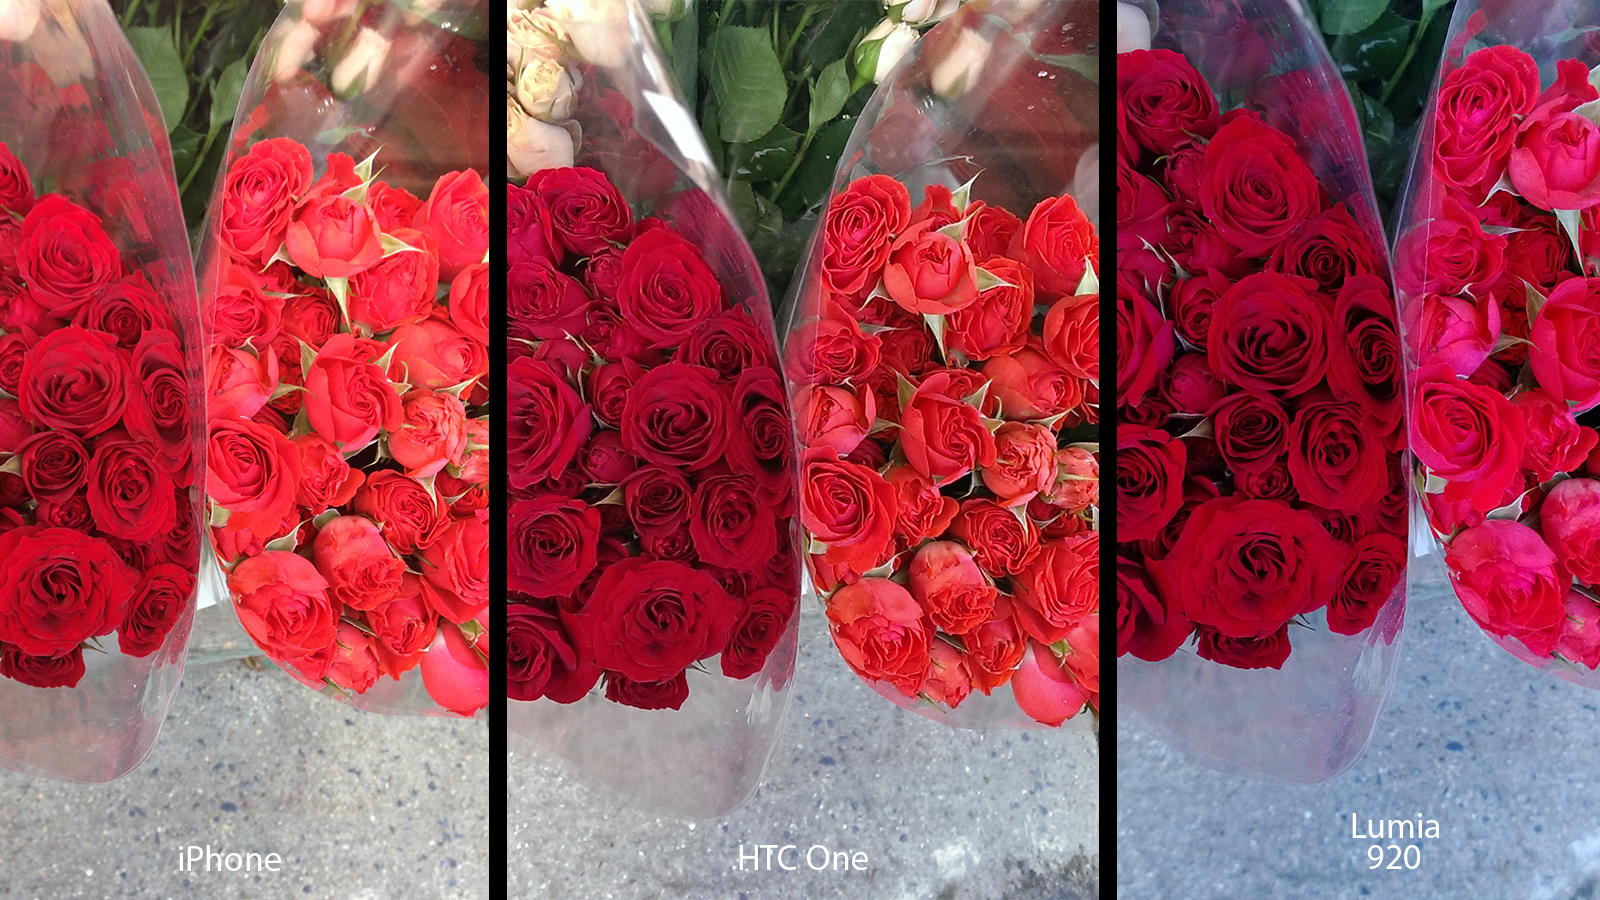 HTC One UltraPixel Camera: How Does It Stack Up?